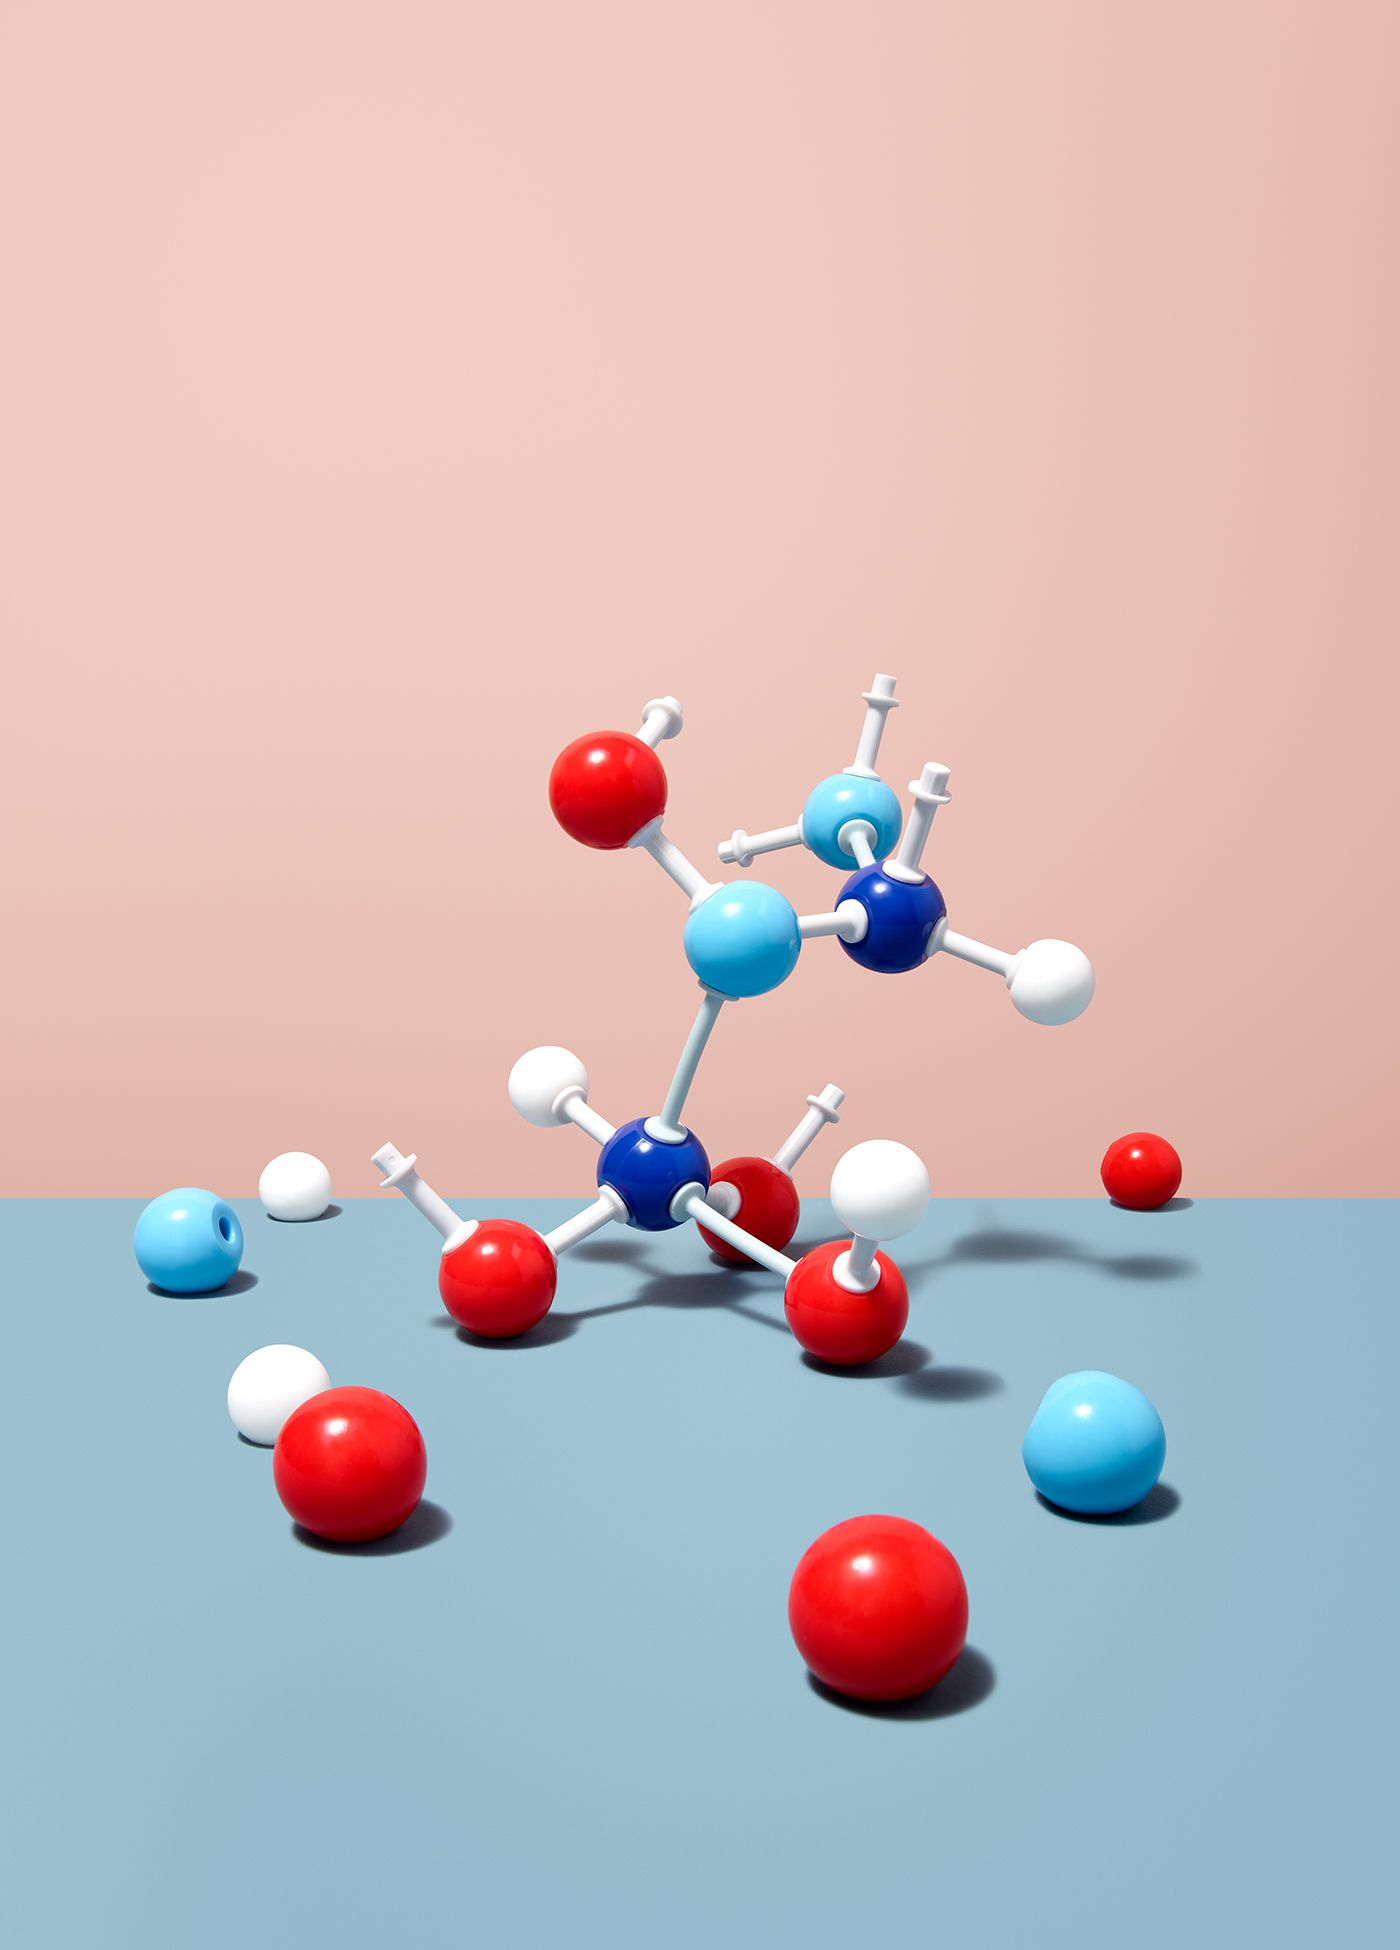 https://tickertapecdn.tdameritrade.com/assets/images/pages/md/Model of molecules being assembled